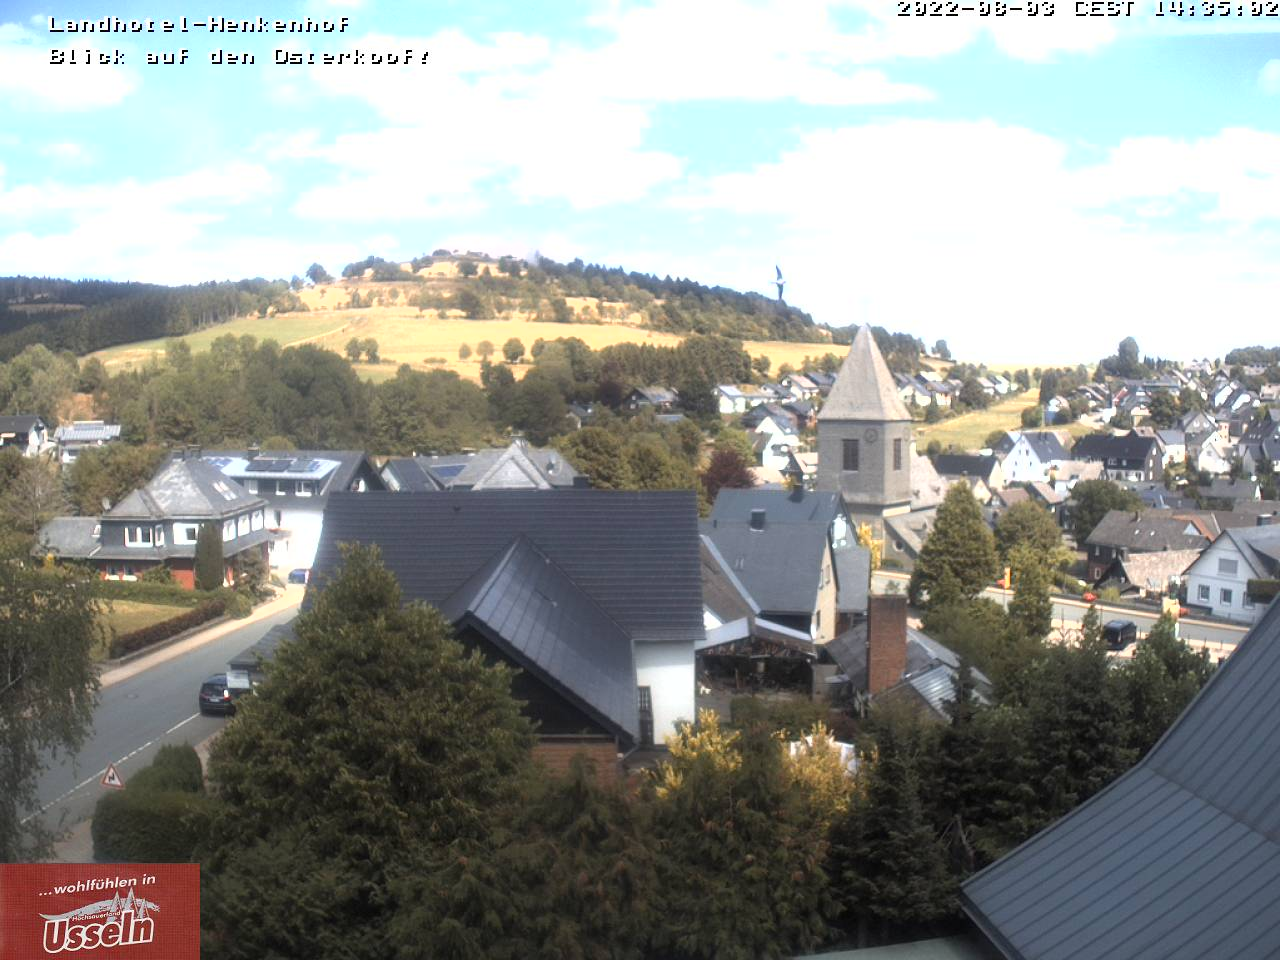 Willingen-Usseln